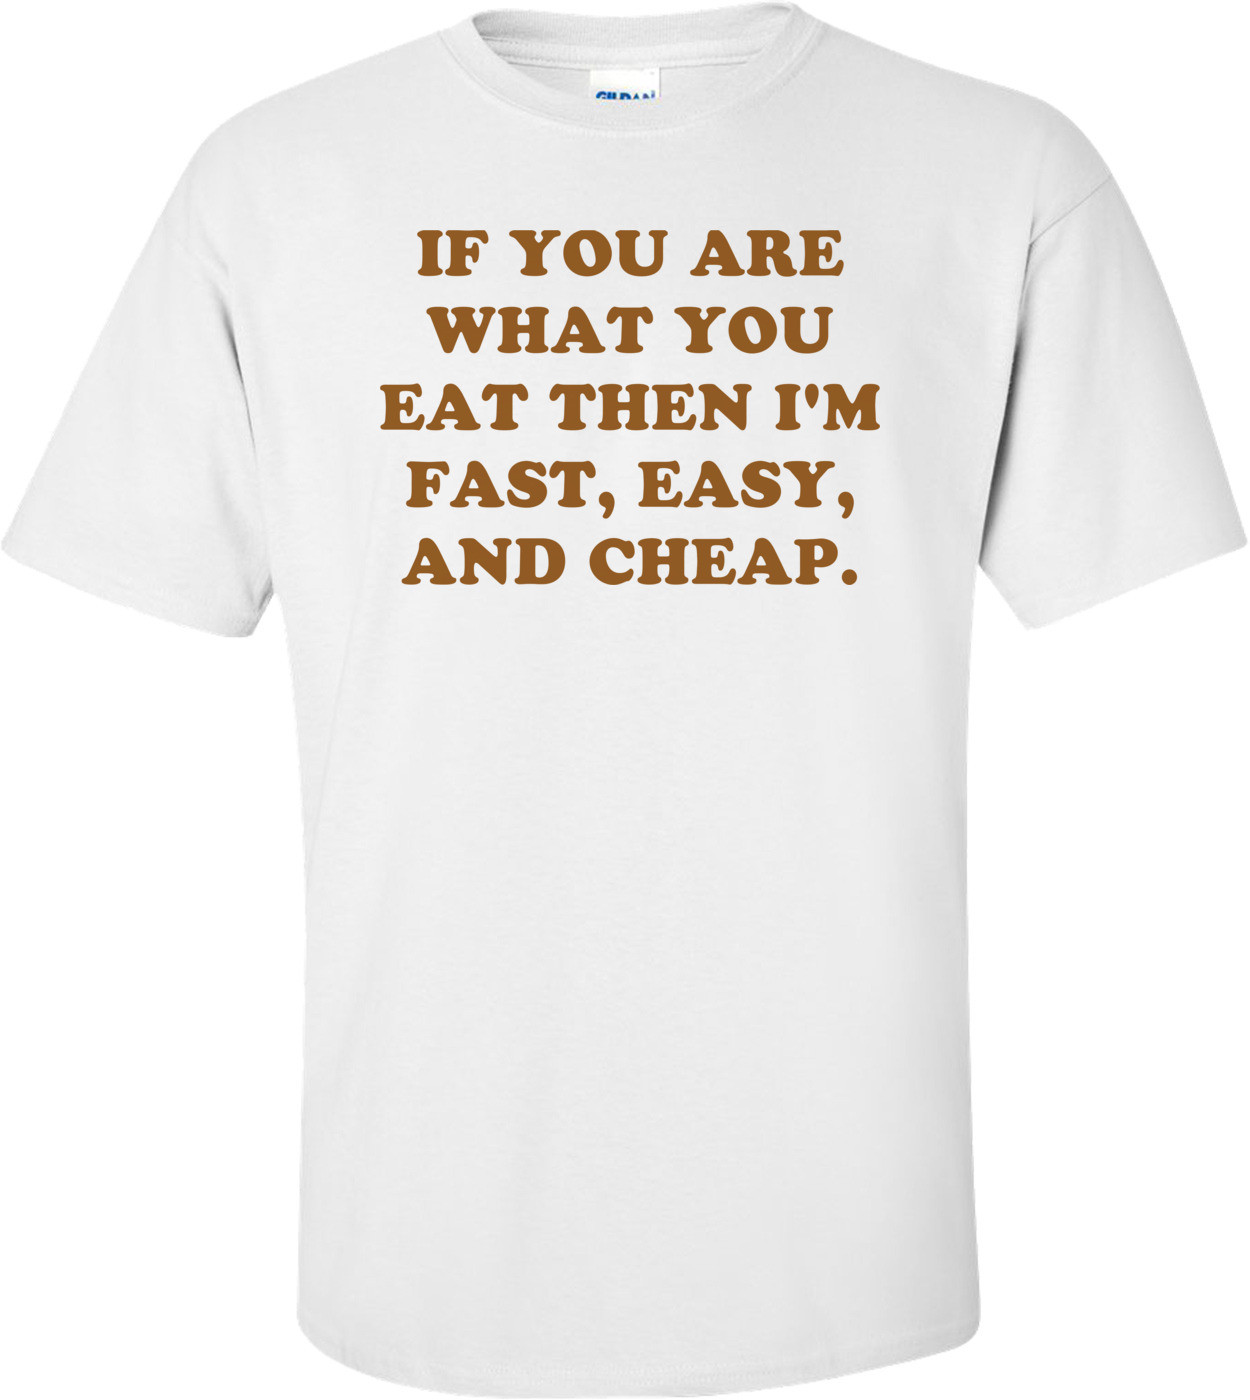 IF YOU ARE WHAT YOU EAT THEN I'M FAST, EASY, AND CHEAP. Shirt